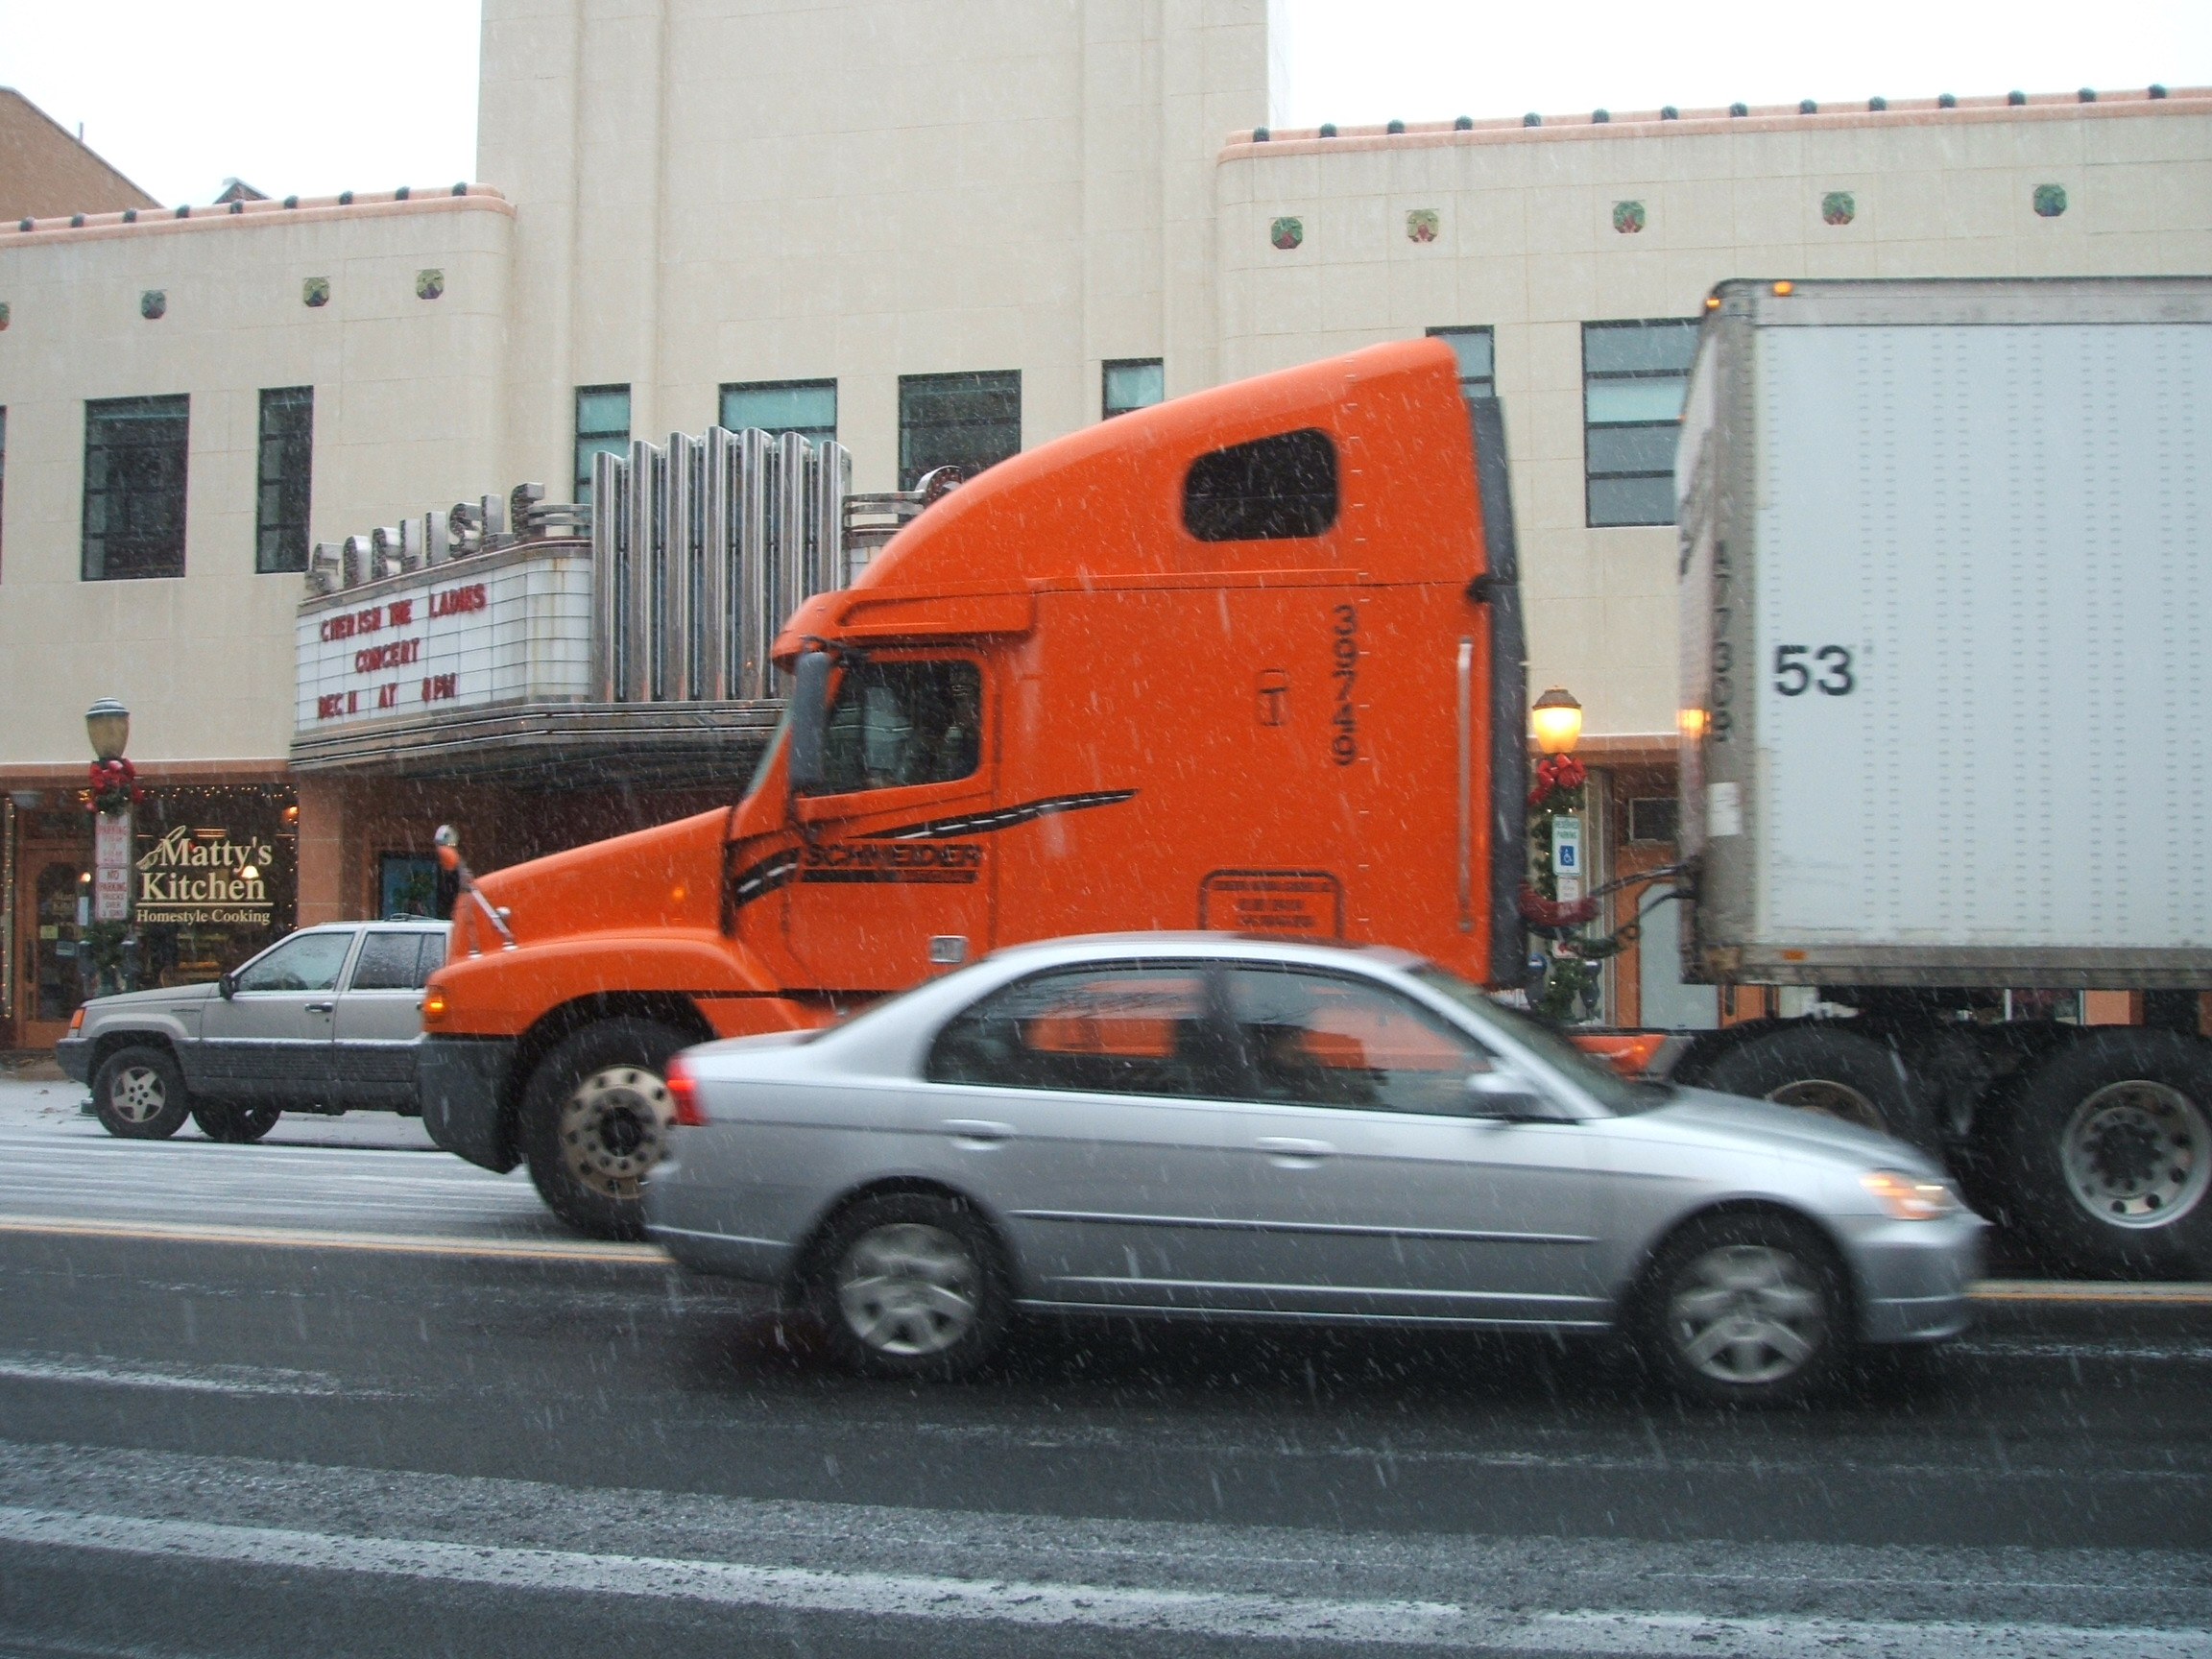 Truck and Car Passing Carlisle Theater, December 5th, 2007. Photograph by Ellen Simon.